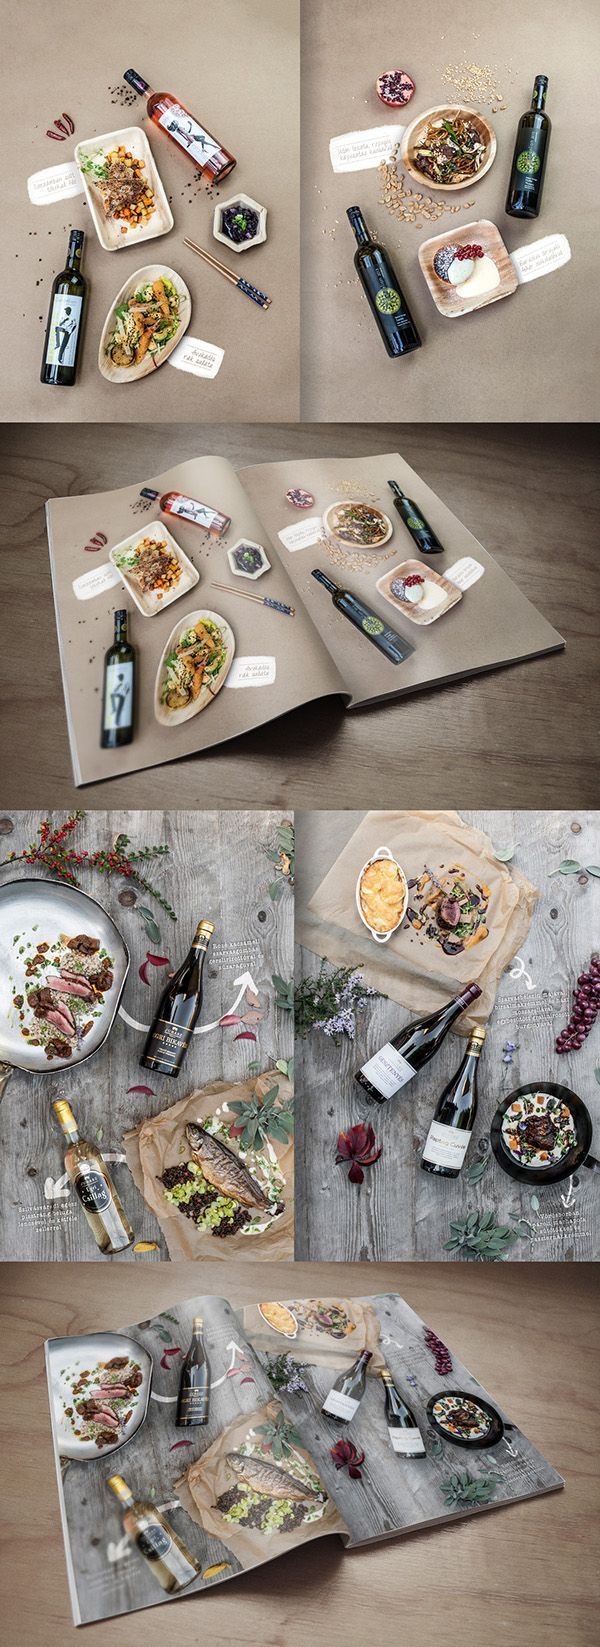 FOOD&WINE on Behance - Szendeff Lőrinc